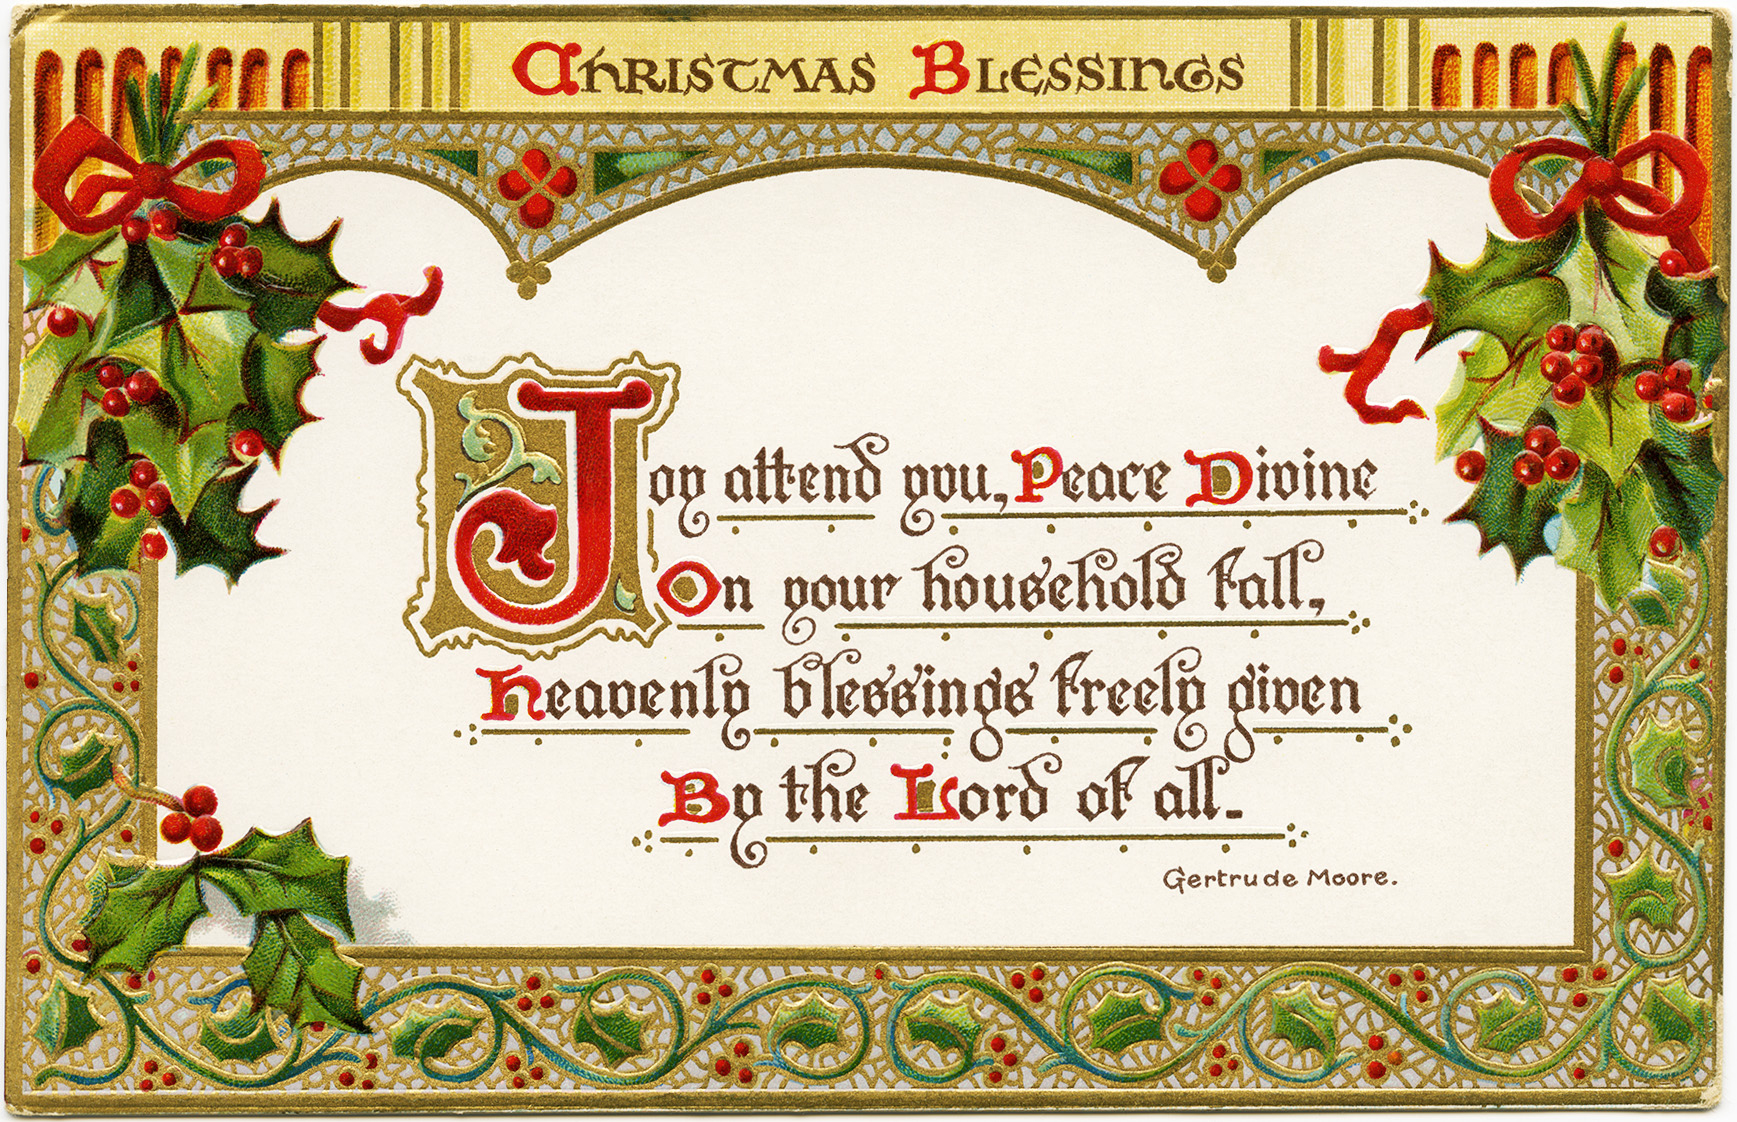 Free Online Printable Religious Christmas Cards – Festival Collections - Free Printable Christian Cards Online